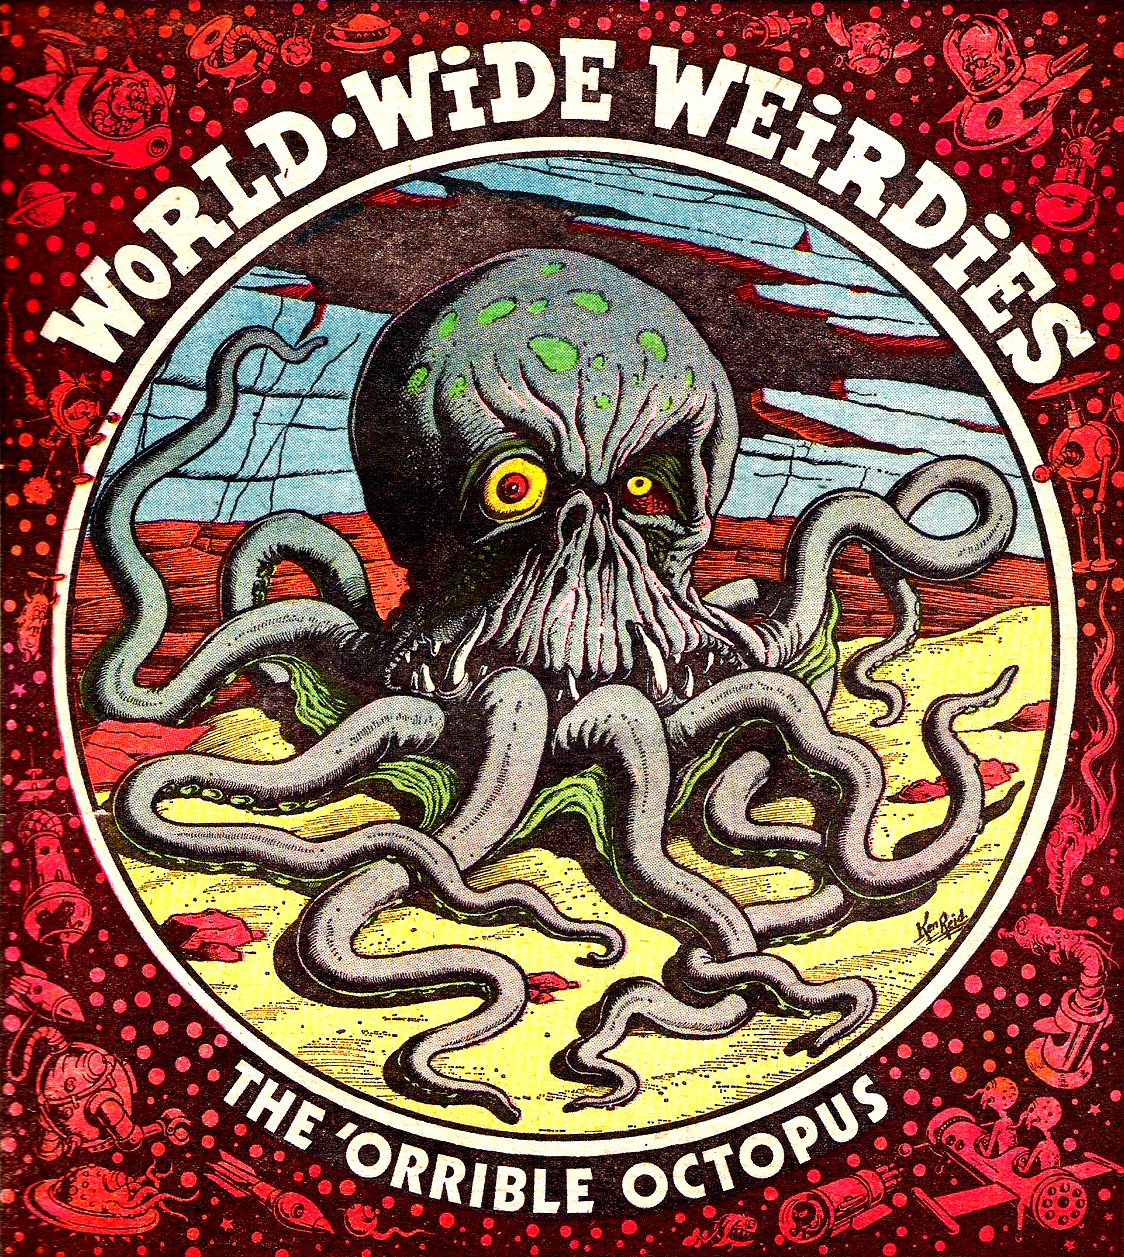 Ken Reid - World Wide Weirdies 59